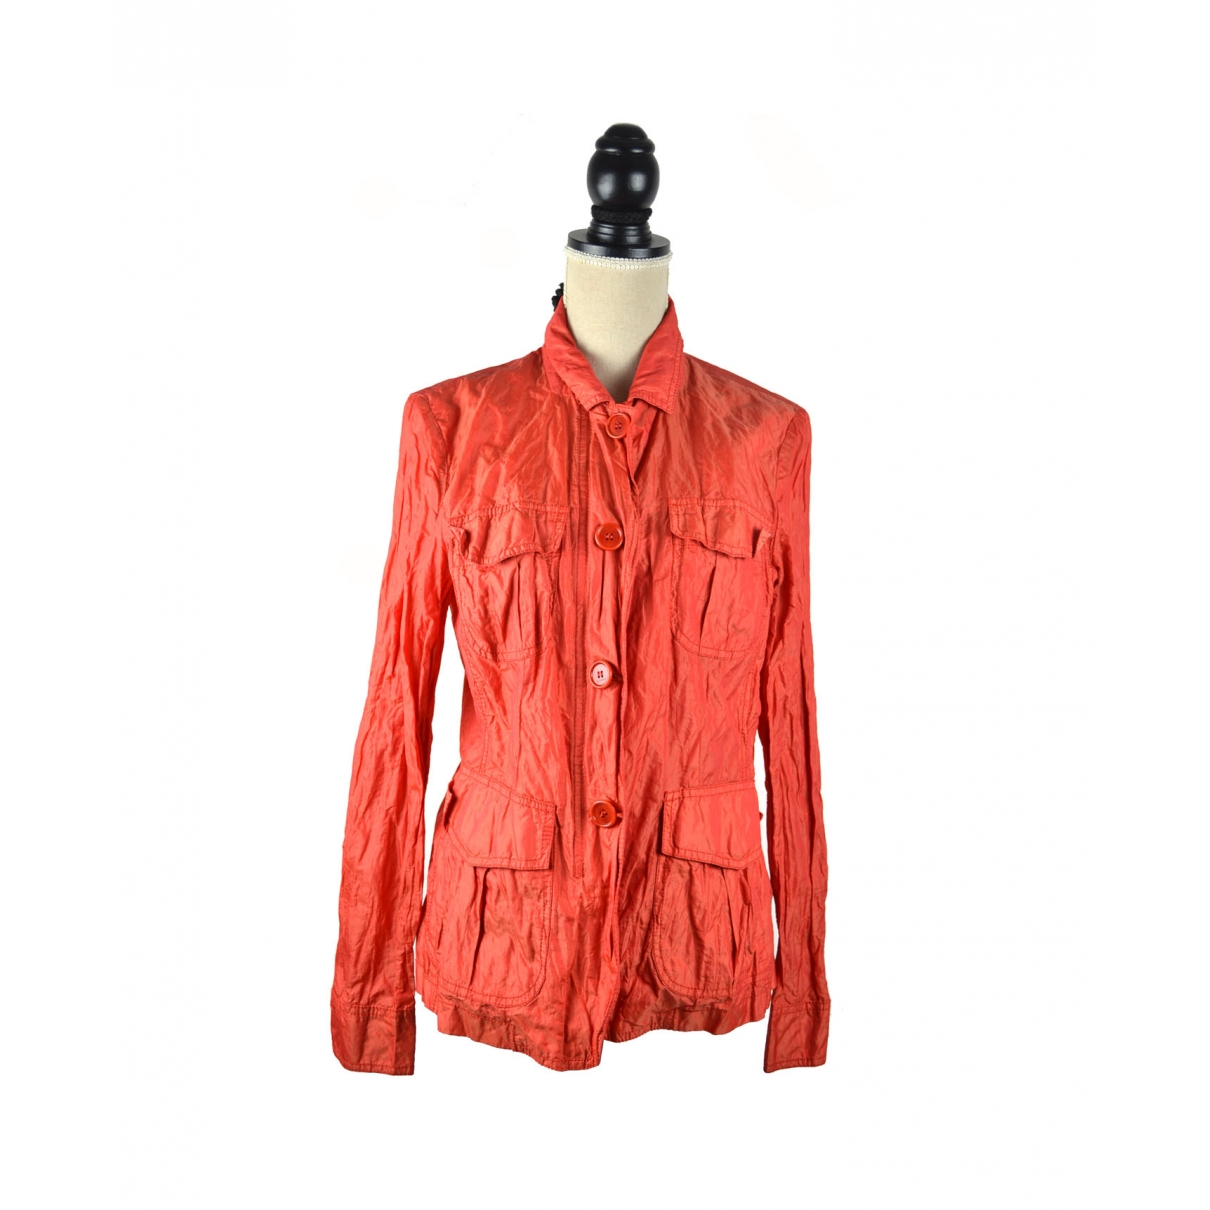 Etro \N Red jacket for Women 46 IT